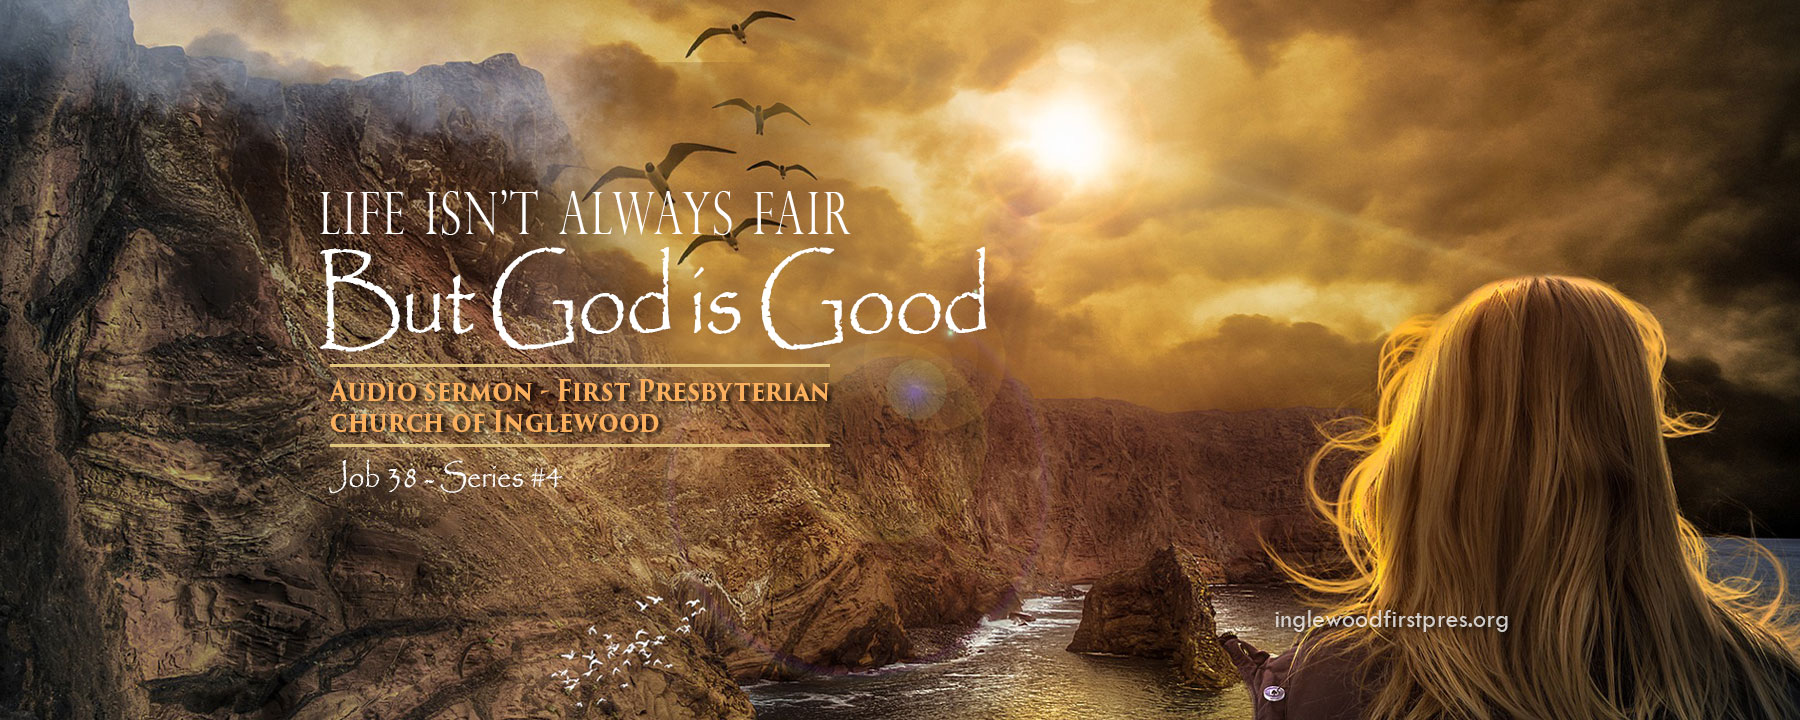 JOB SERIES #4: Life isn't Always Fair, But God is Good by Rev. Dr. Harold E. Kidd (Job 38: 1 – 7; 34 - 41)